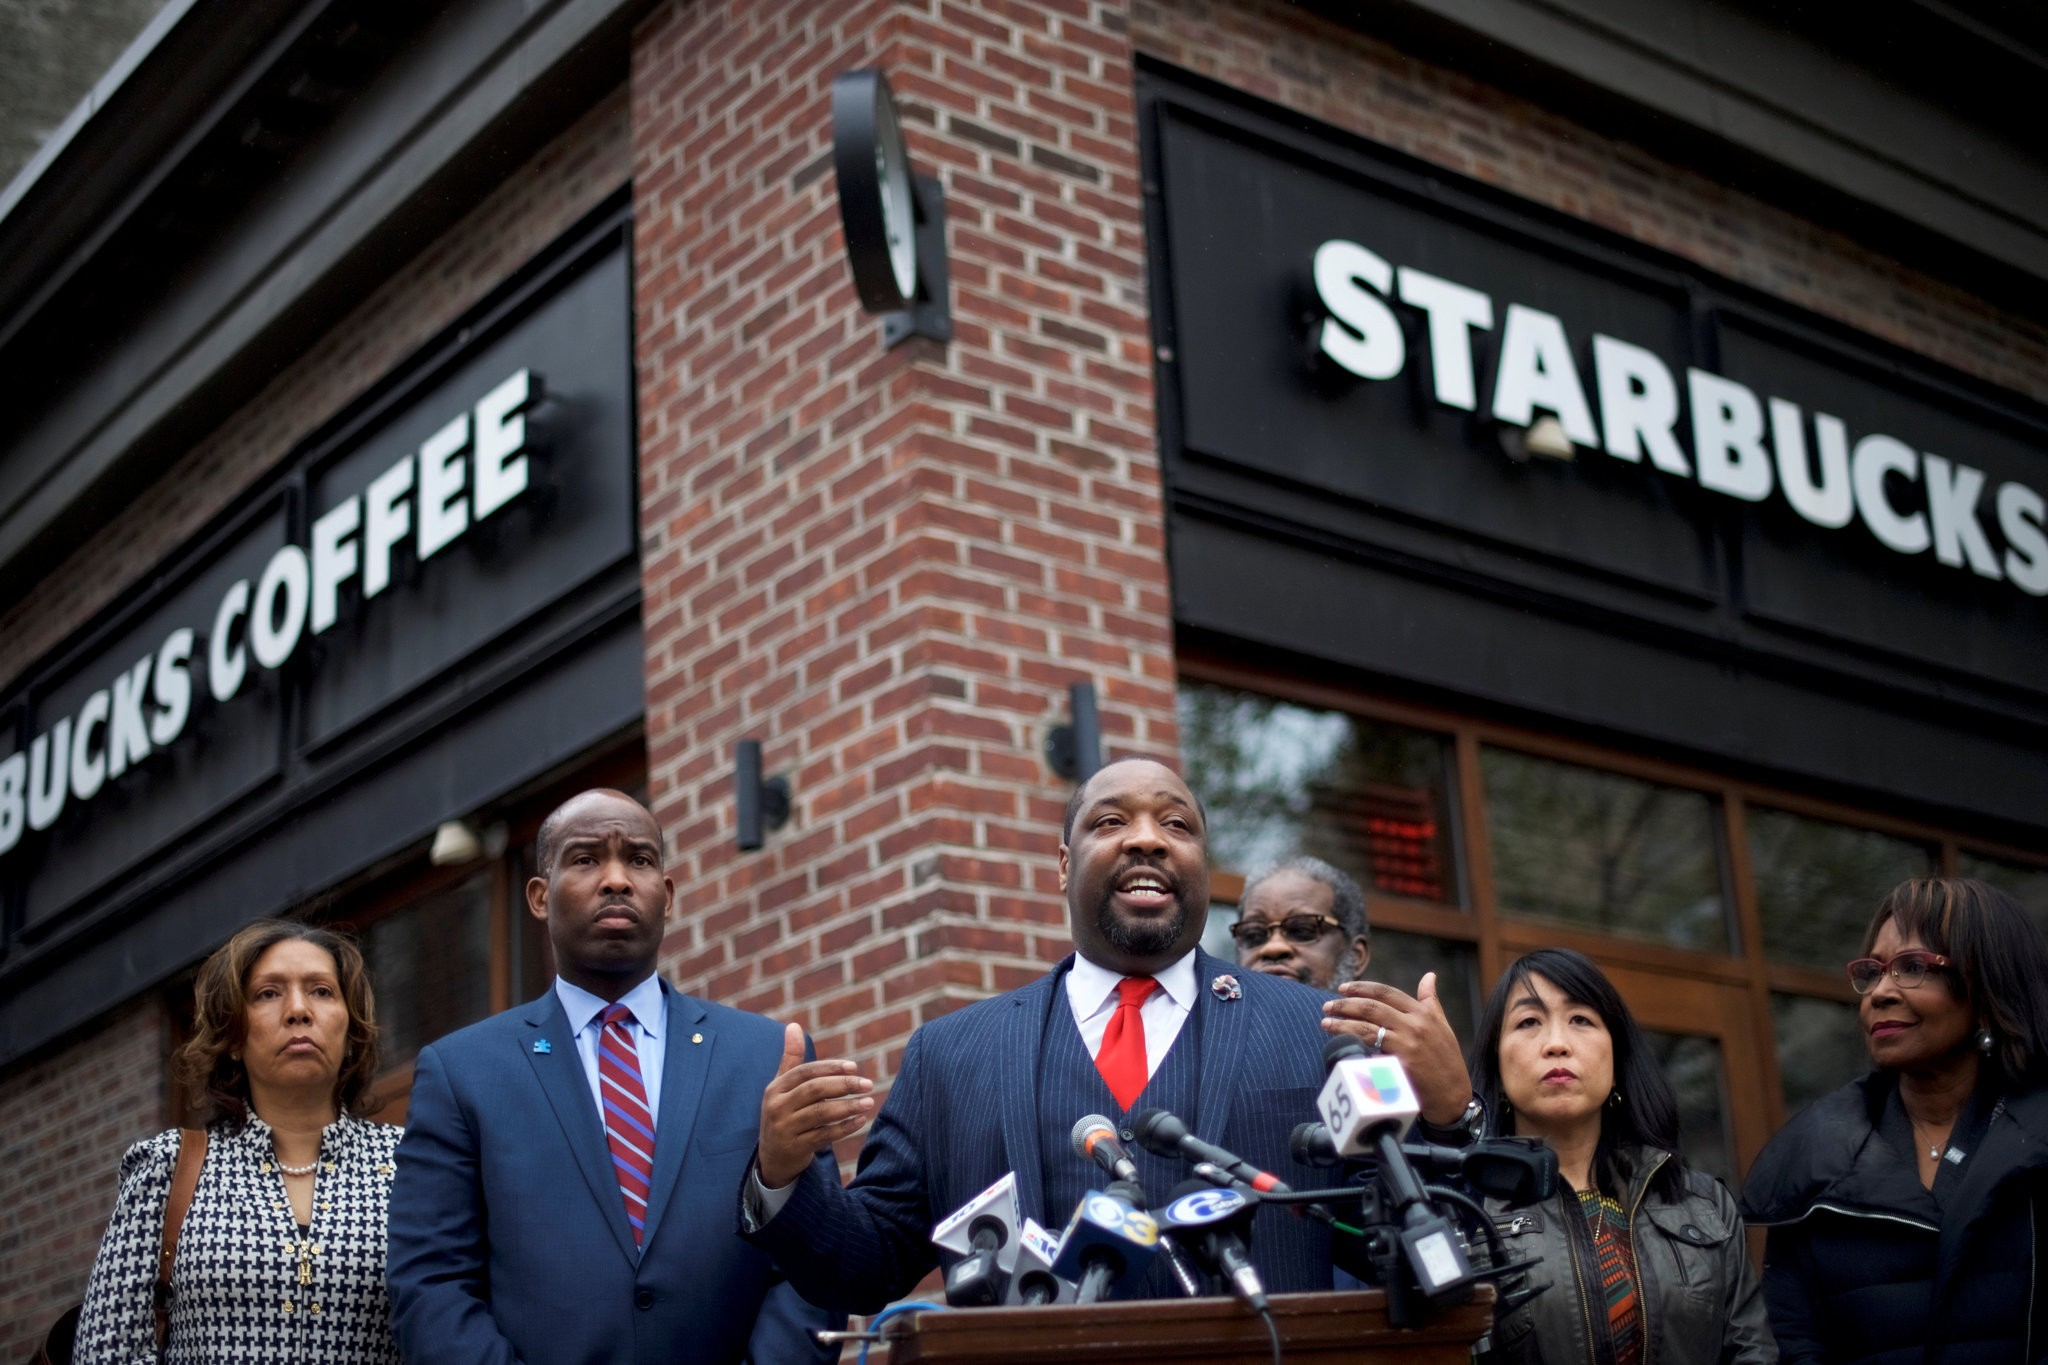 Kenyatta Johnson, A Philadelphia City Councilman, Outside The Starbucks Store In The City Where Two Black Men Were Arrested Last Week. (Photo By Mark Makela/Reuters)